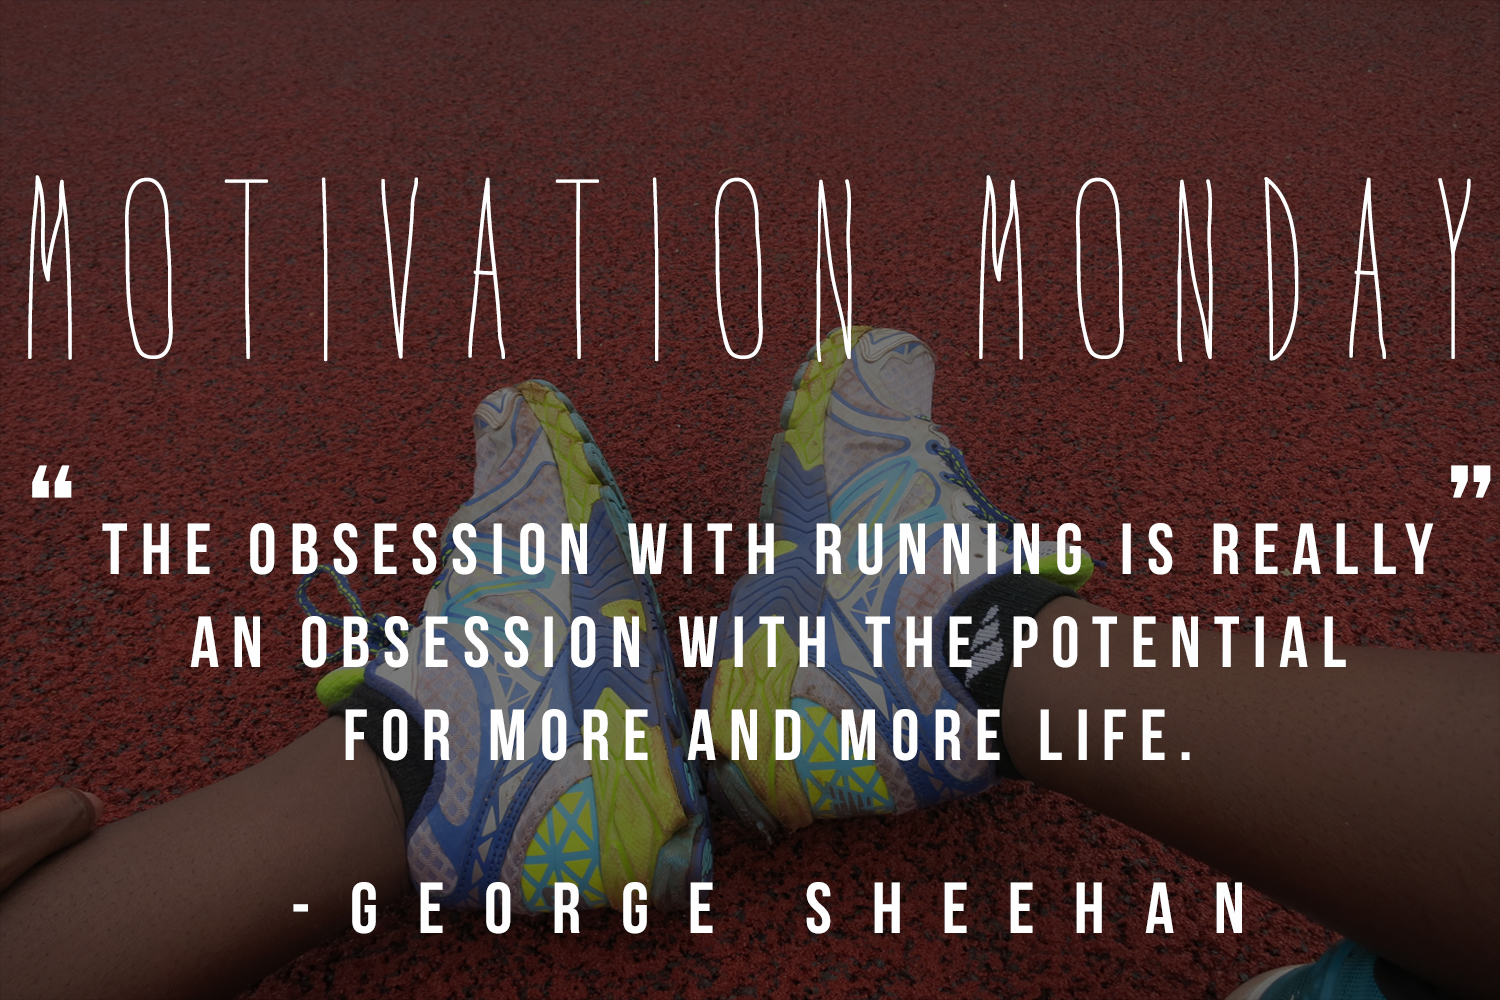 The Obsession with Running - Actively Gemma